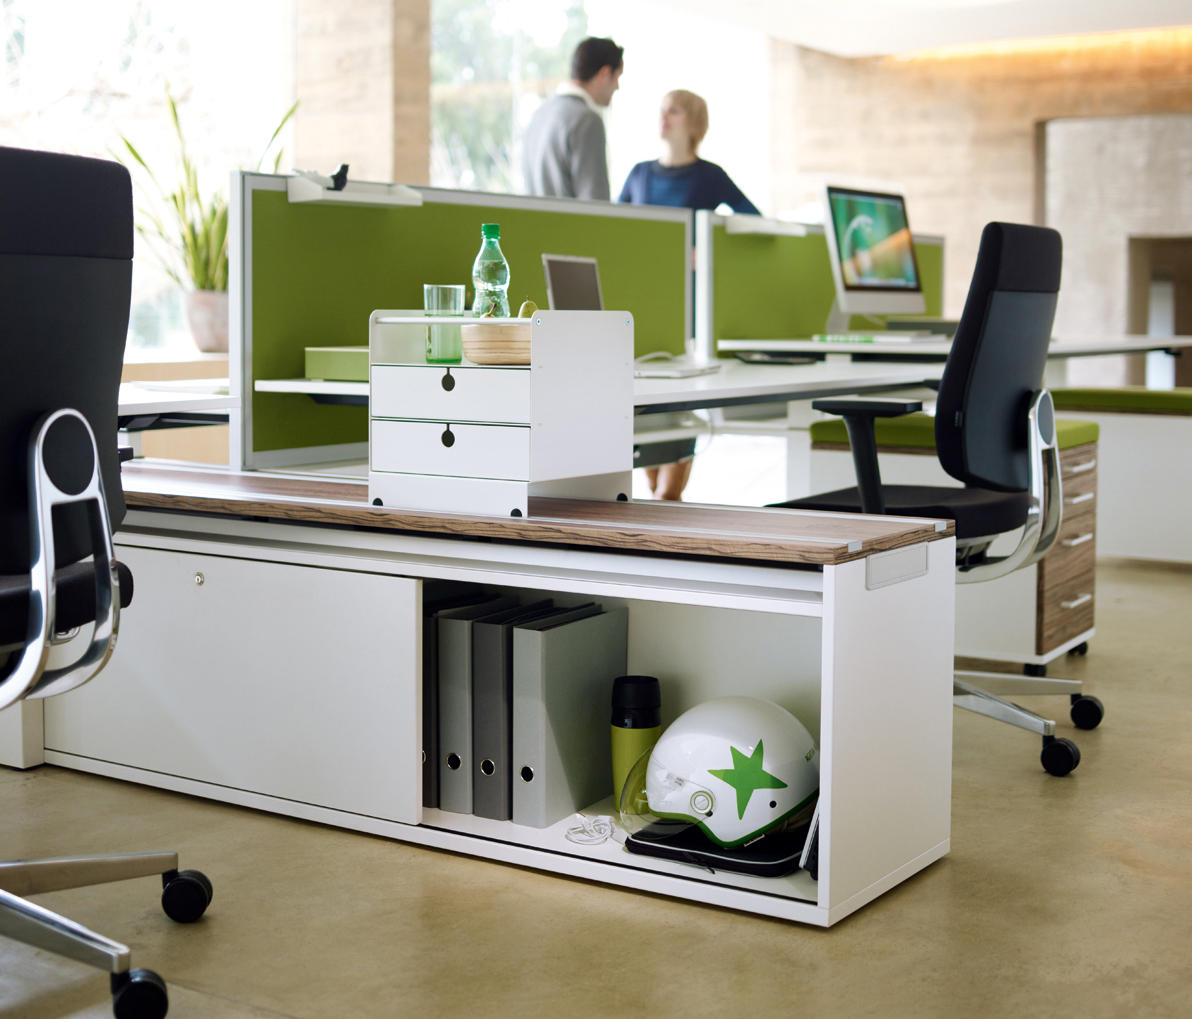 TEMPTATION STORAGE - Kabelmanagement von Sedus Stoll | Architonic